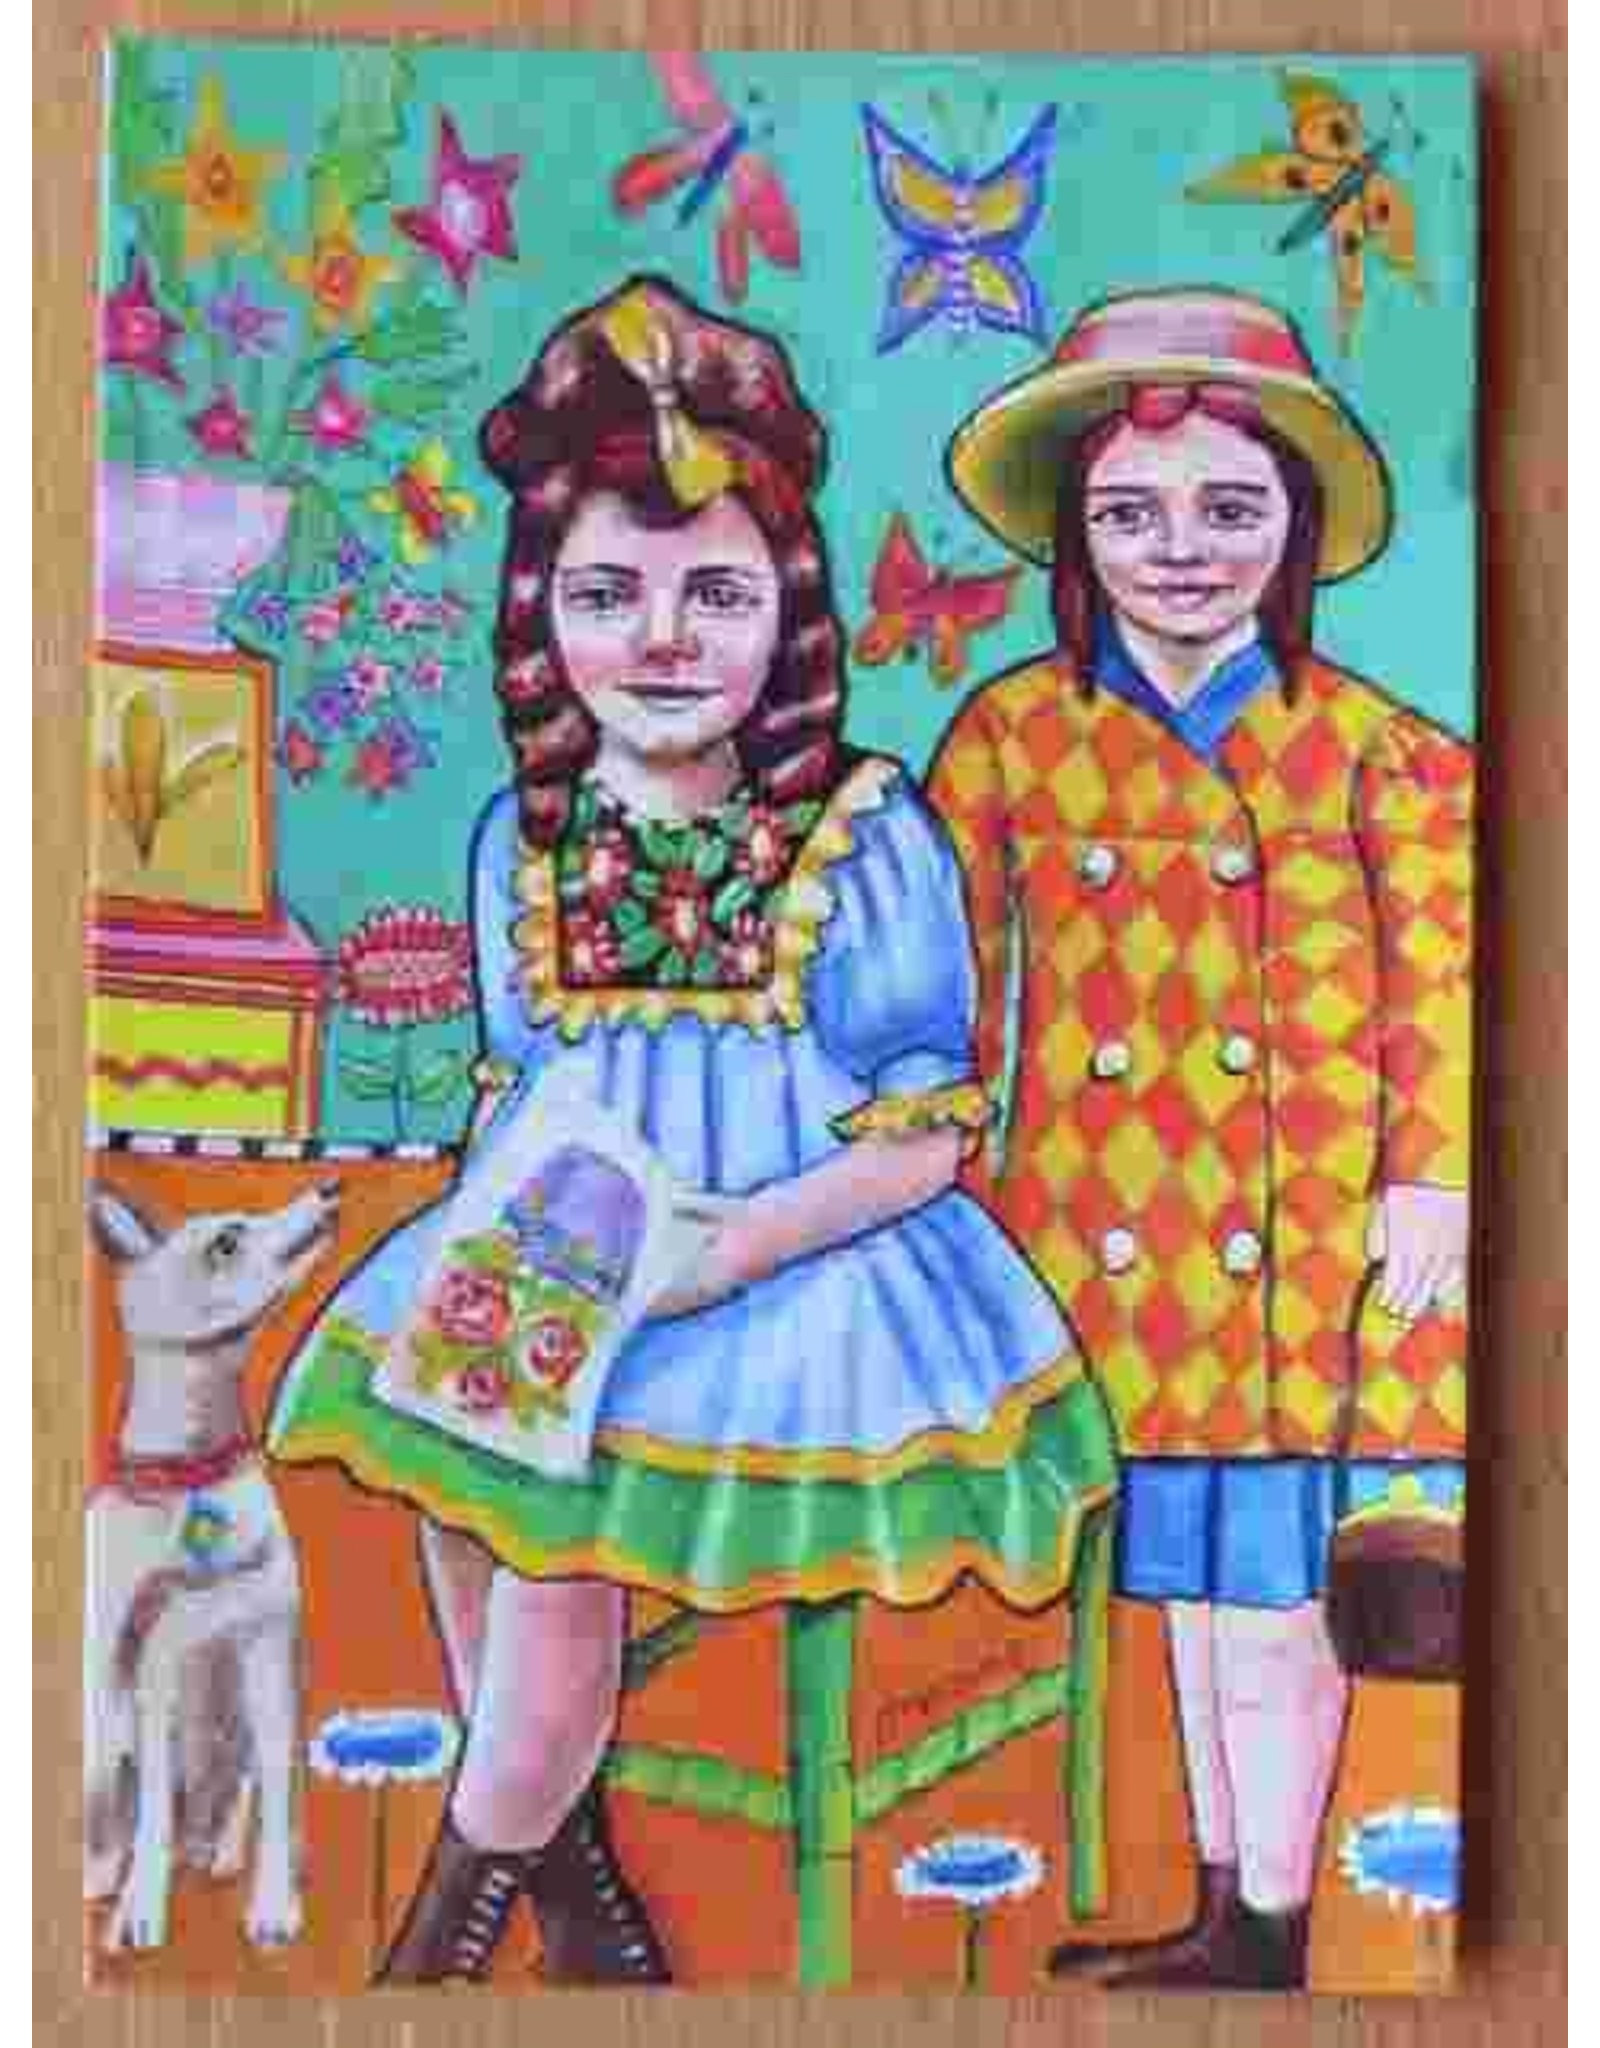 Art card - Girls with dog